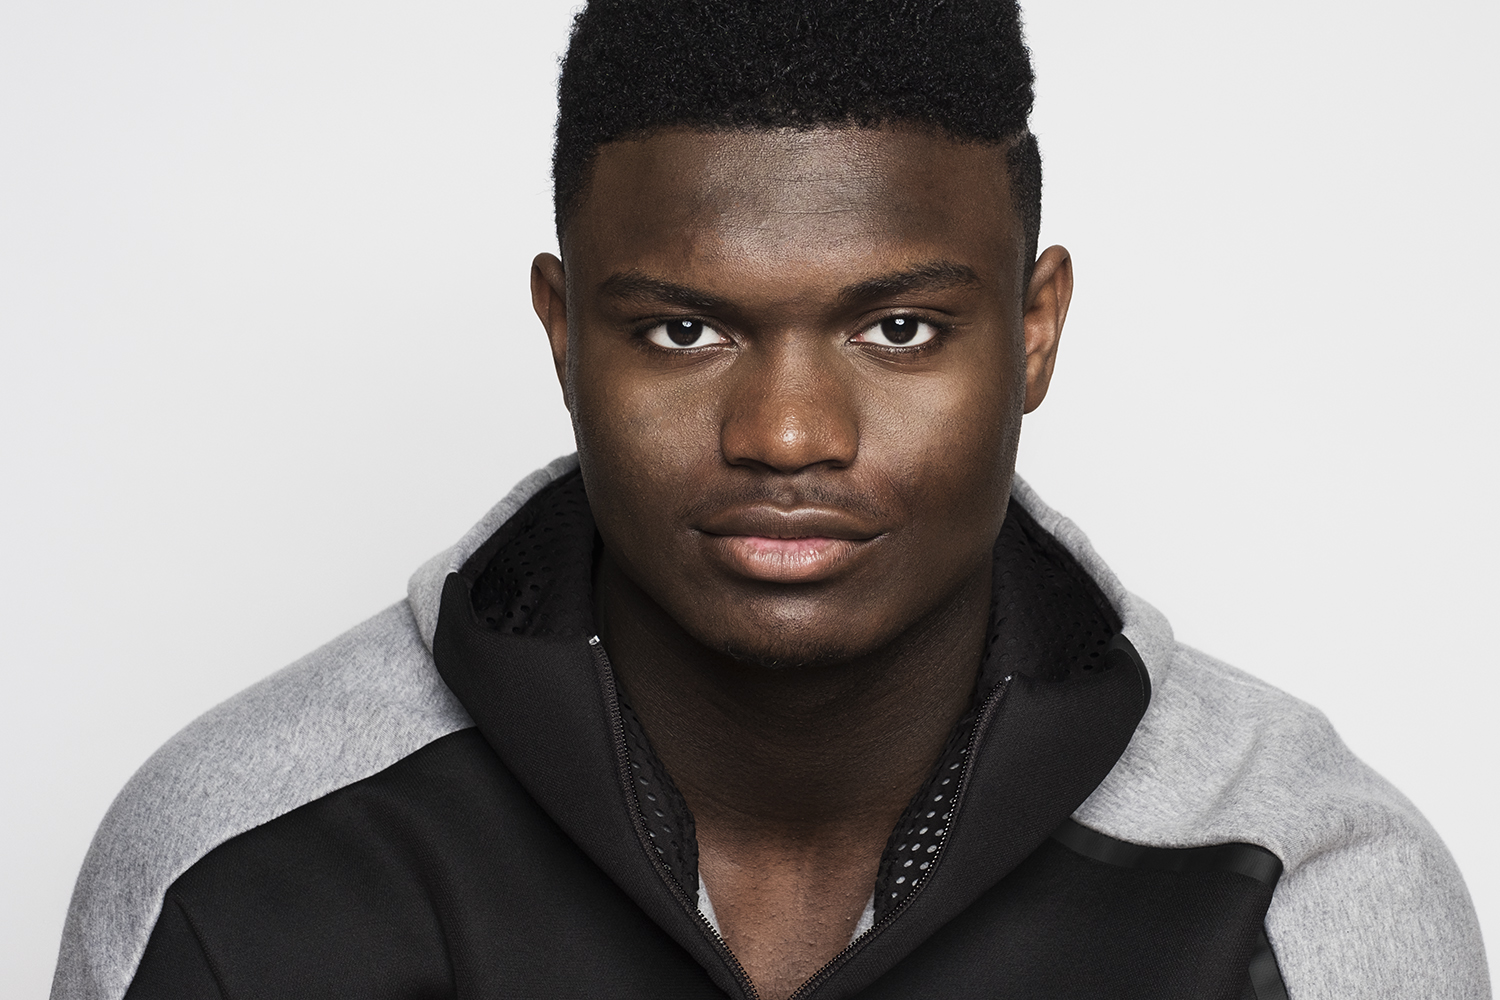 Ian Curcio photographs Zion Williamson head on against a white background